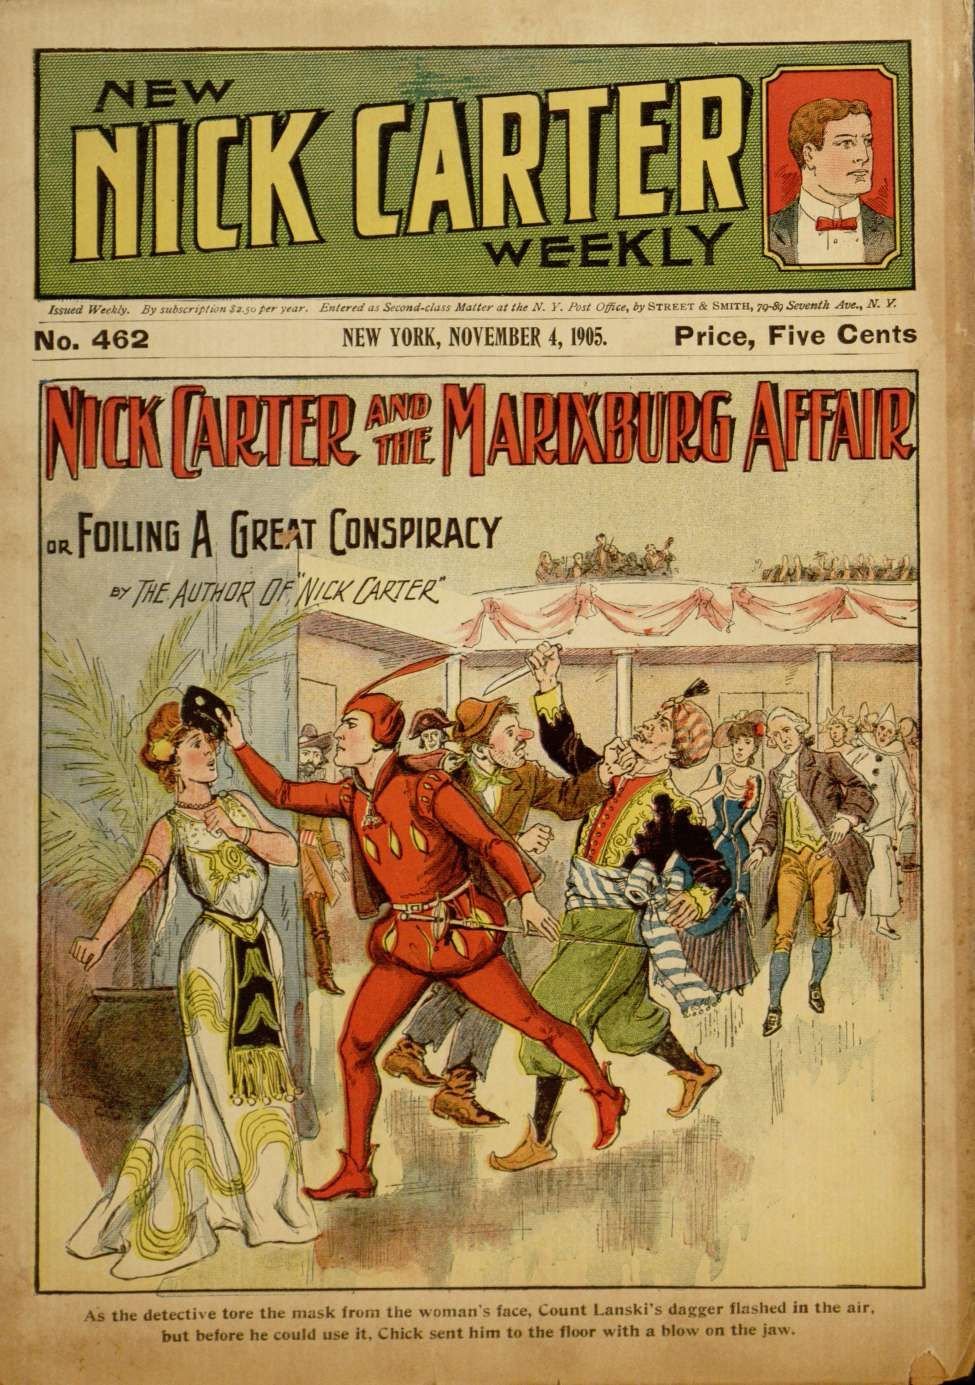 New Nick Carter Weekly, November 1905 Artère